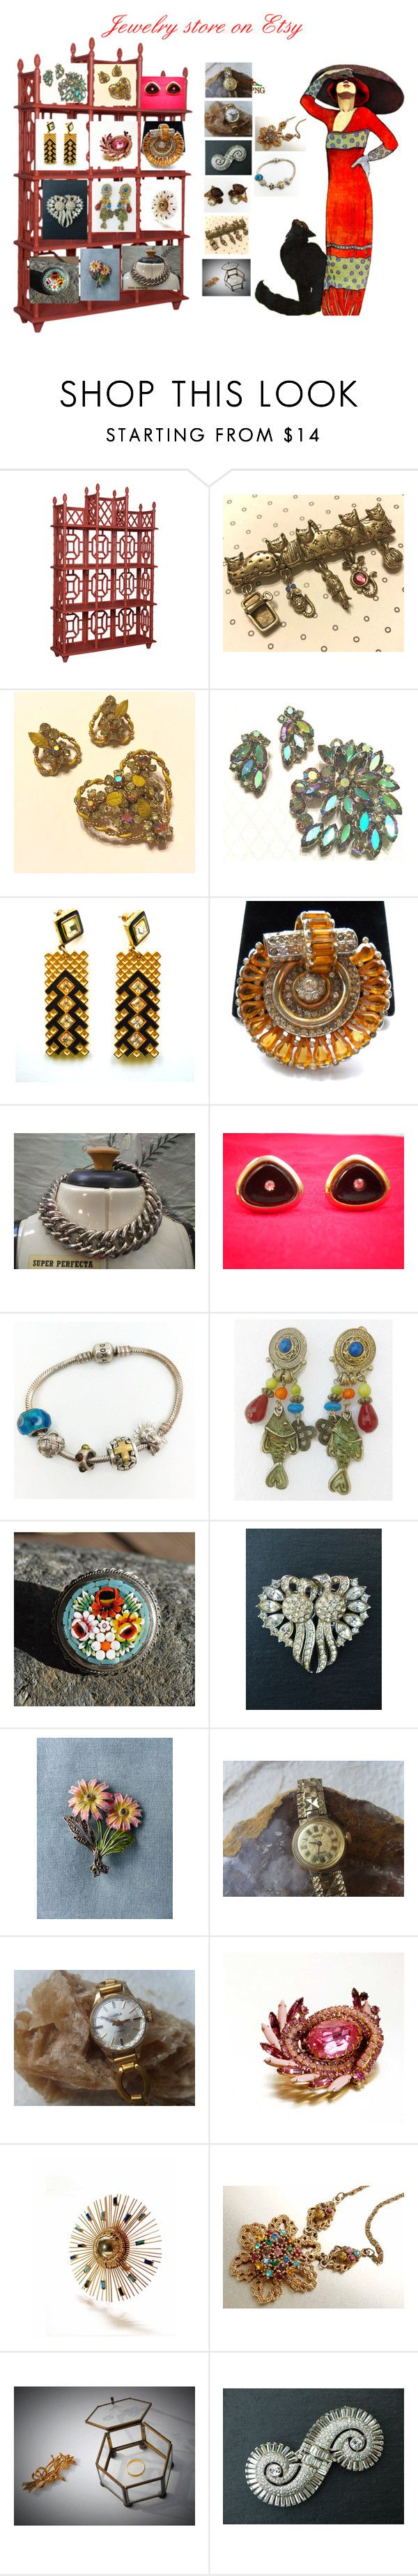 Vintage Jewelry on Etsy! by luckystanlv on Polyvore featuring CORO and vintage